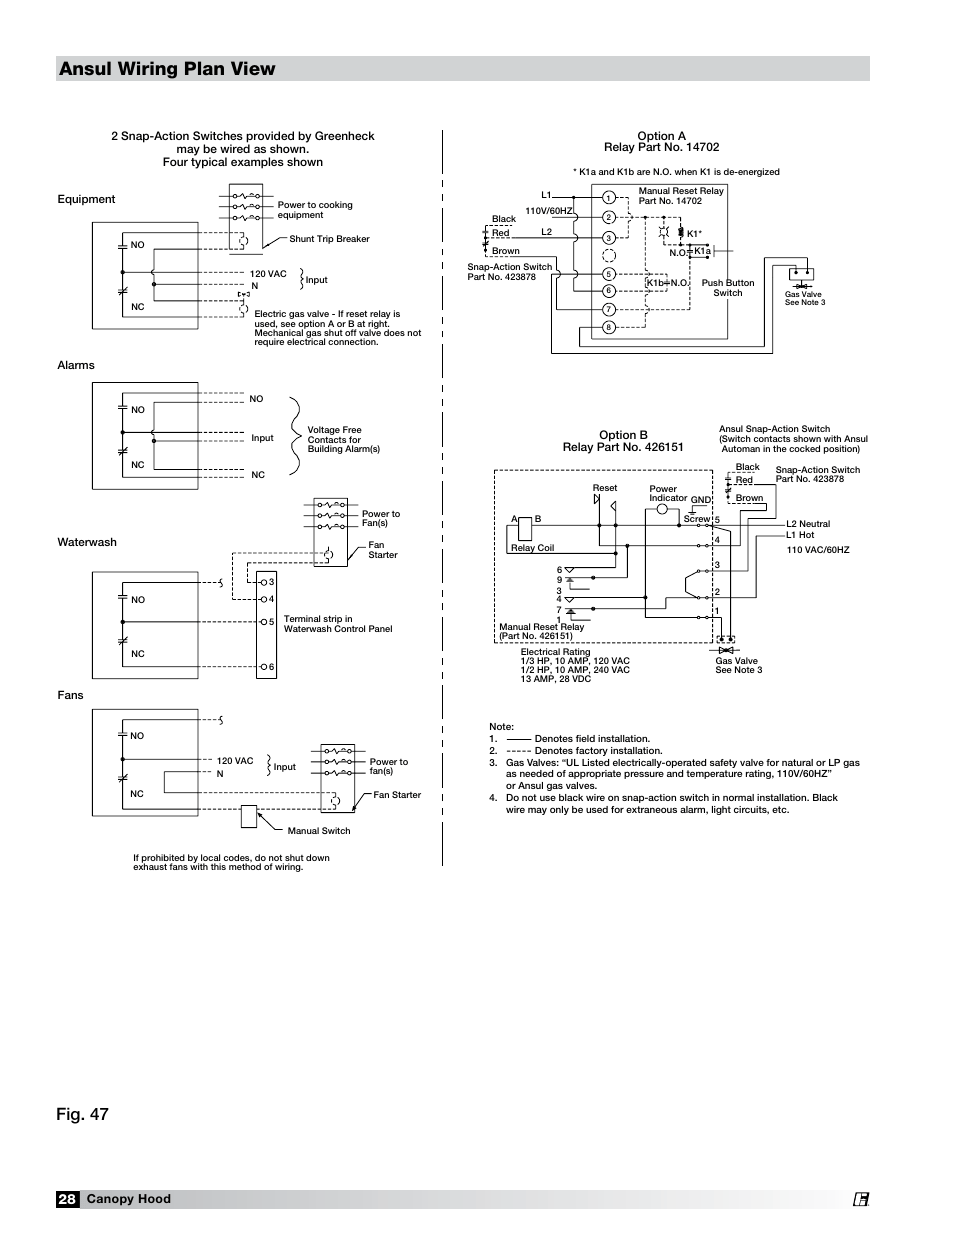 greenheck fan 452413 page28?resize\\\\\\\\=954%2C1235 remarkable robertshaw gas valve wiring diagram ideas wiring robertshaw 9701i2 wiring diagram at alyssarenee.co